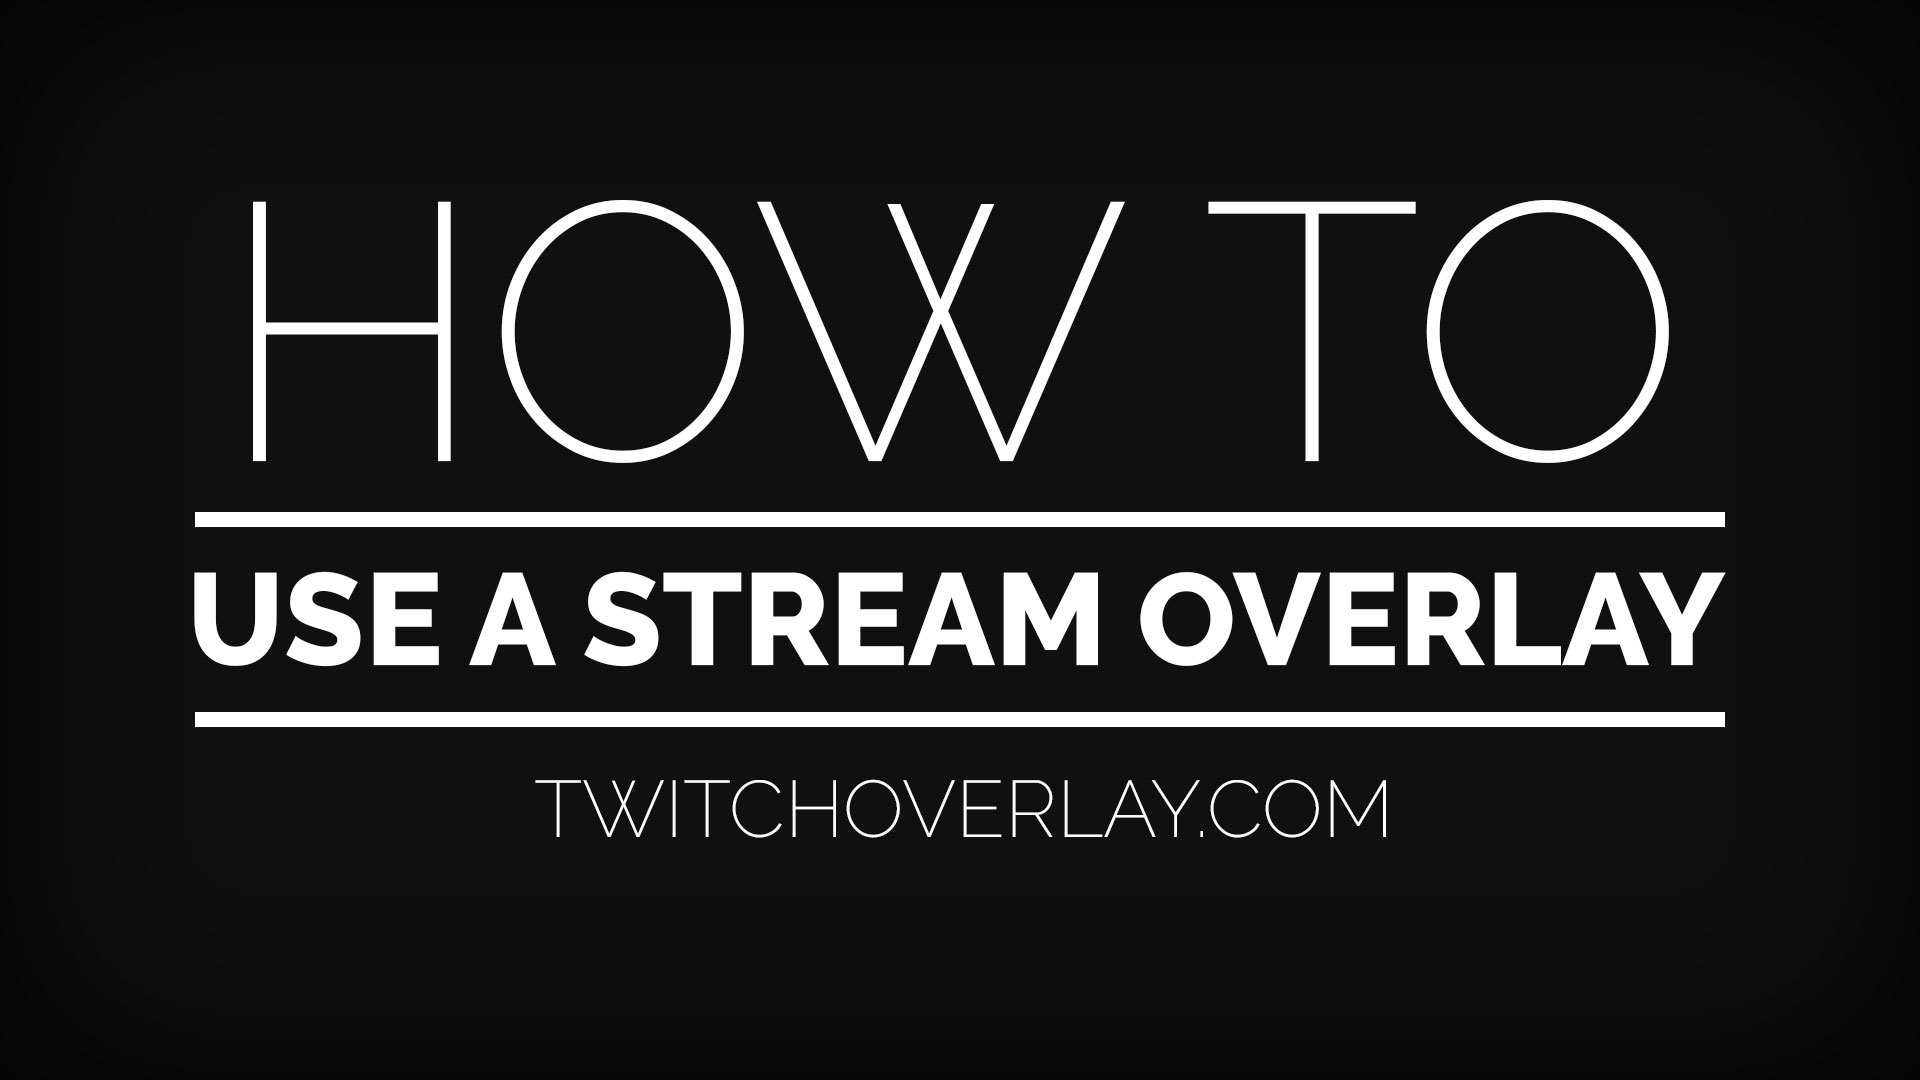 how to use a stream overlay - Twitch Overlay